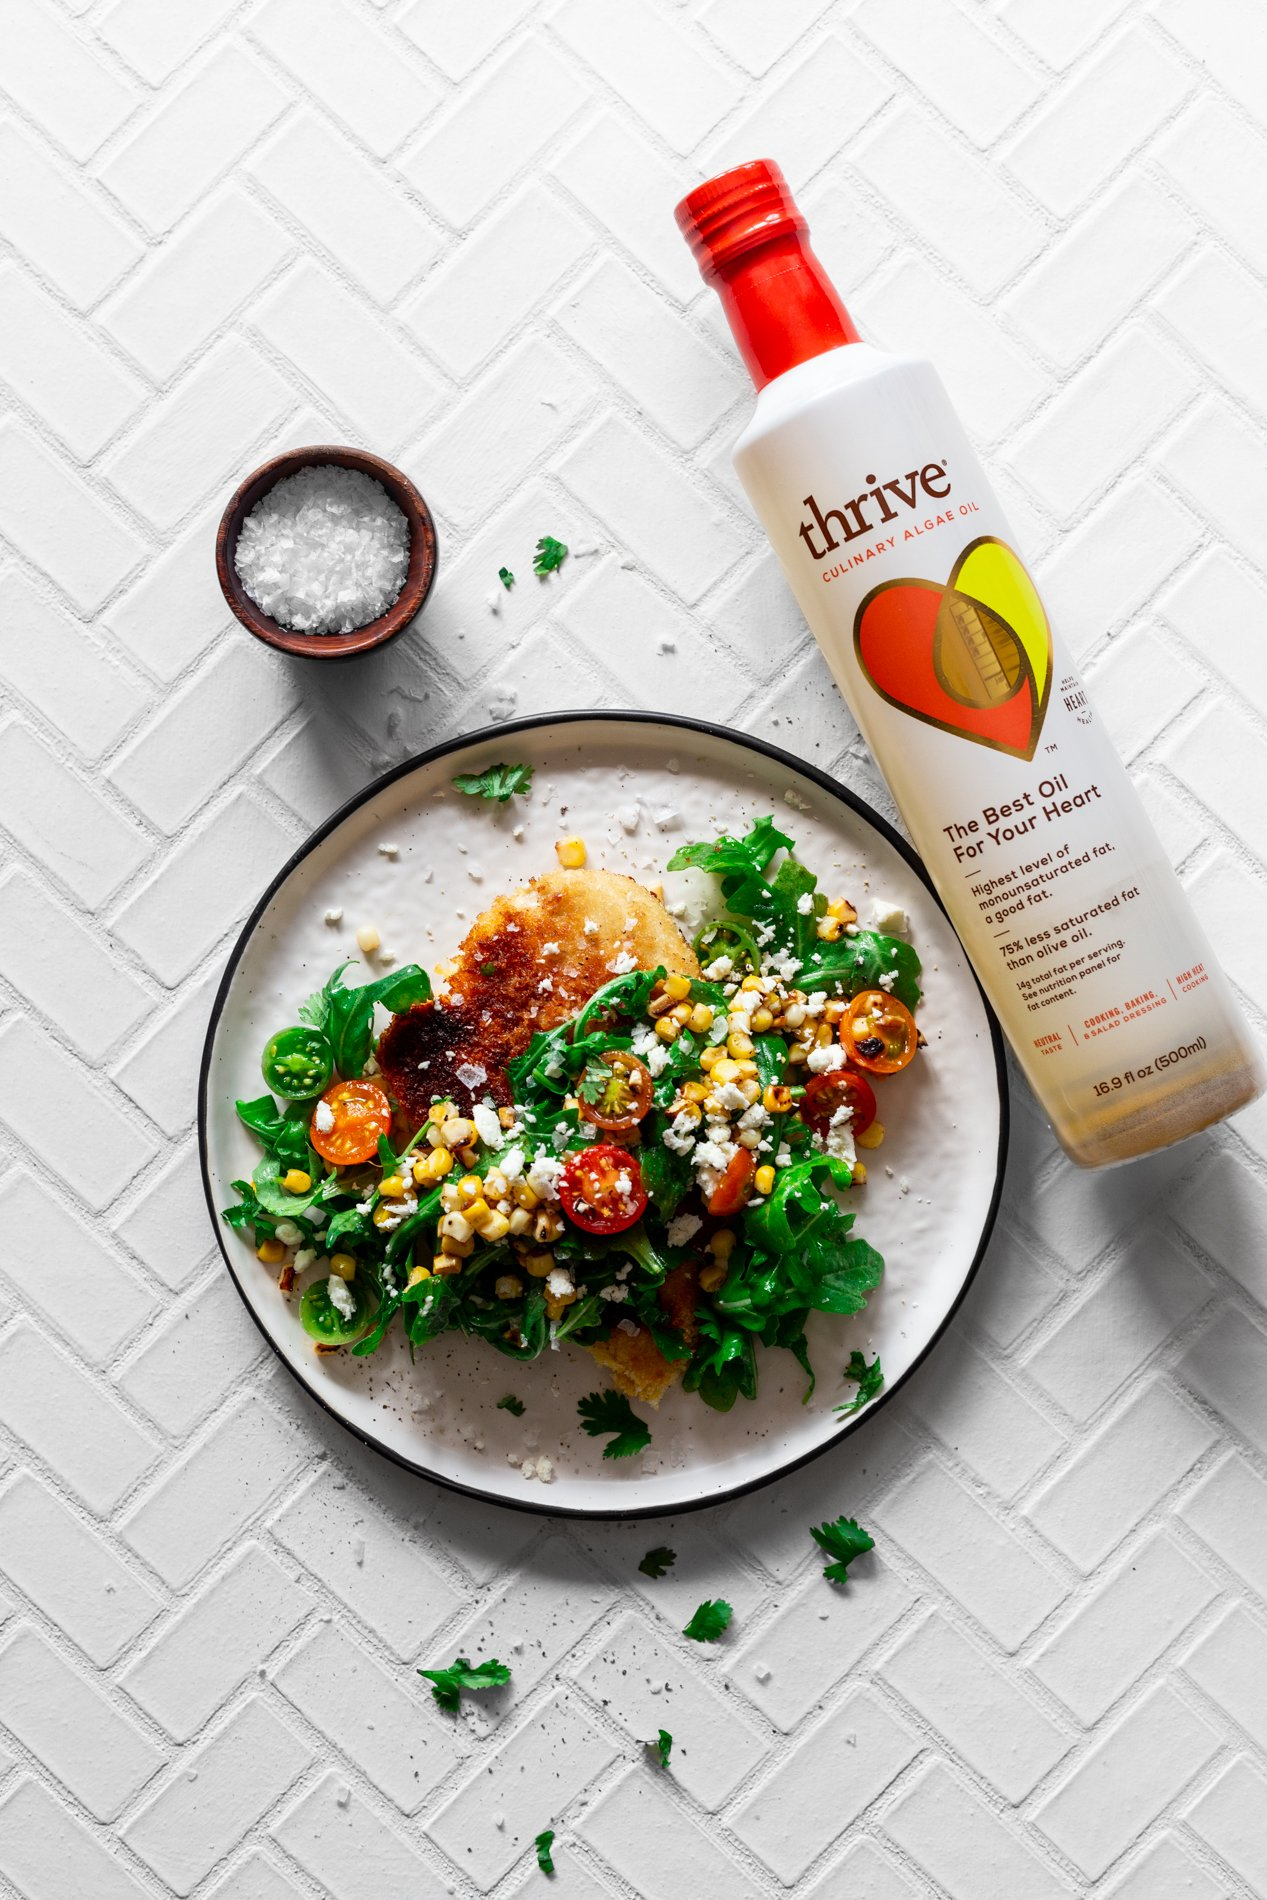 overhead view of a plate of easy chicken milanese recipe with charred corn, tomato, and arugula salad with a bottle of thrive culinary algae oil laying on its side